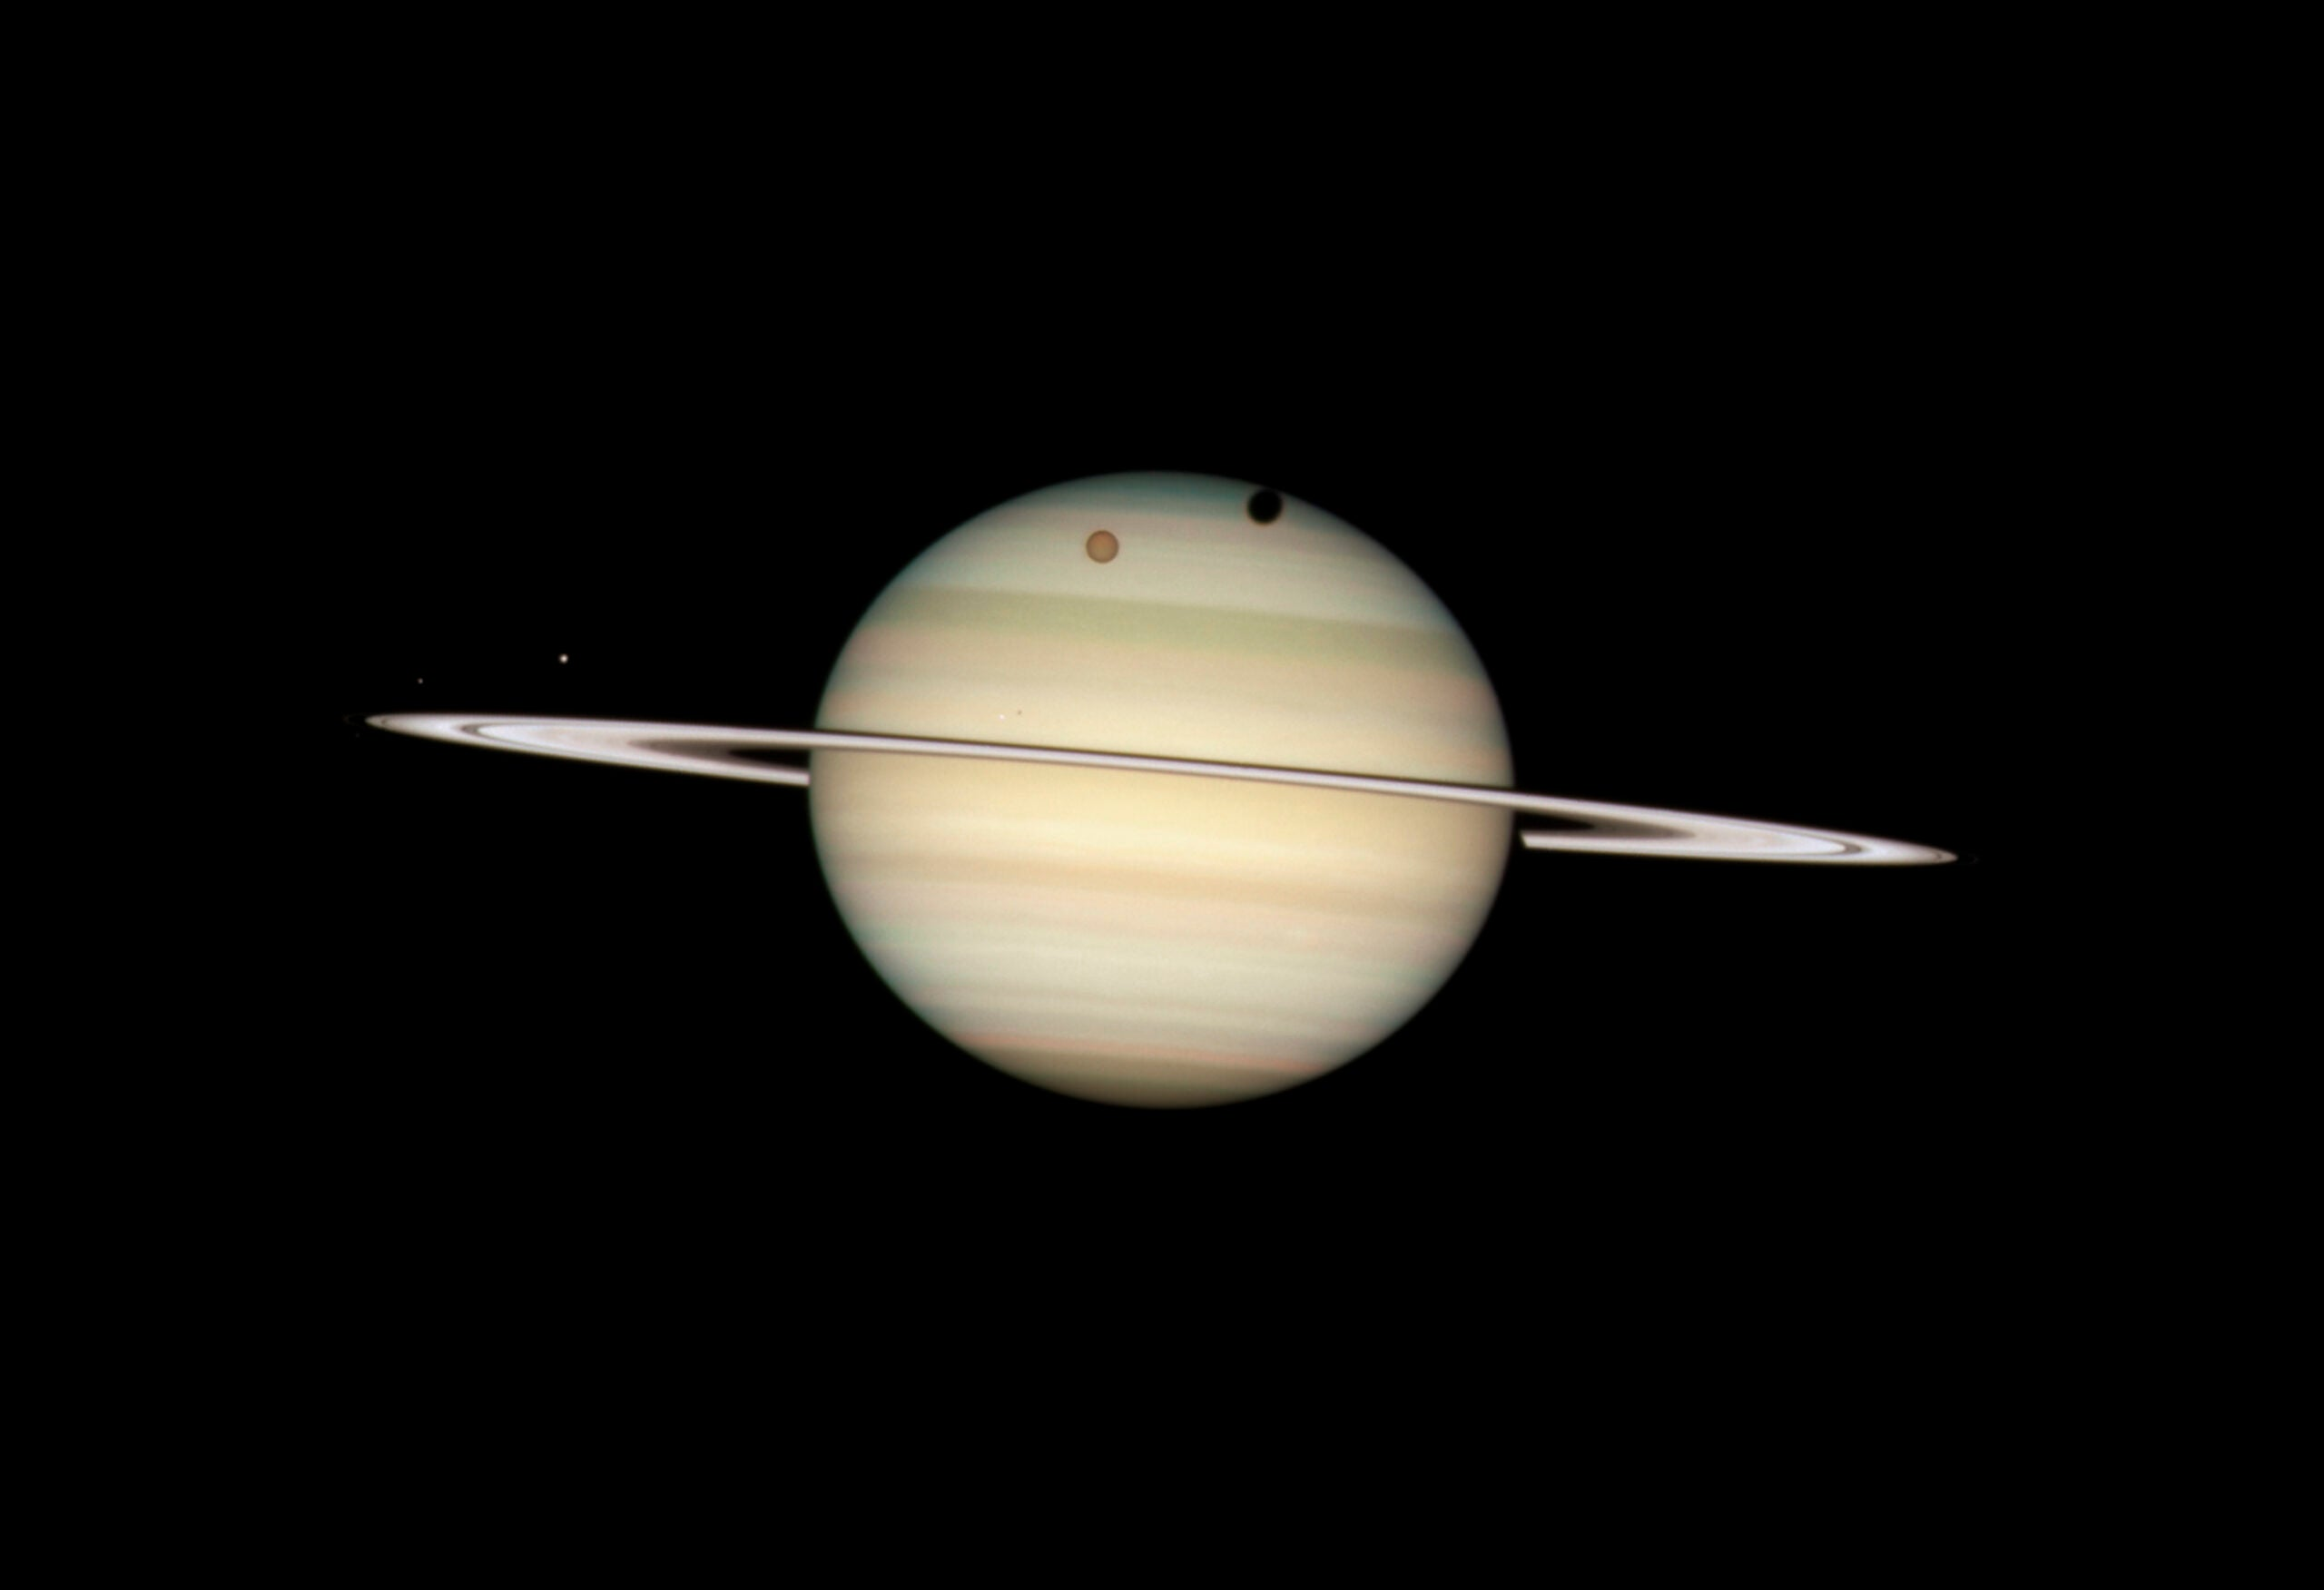 The planet Saturn, viewed nearly edge-on, with four of its moons visible in the foreground